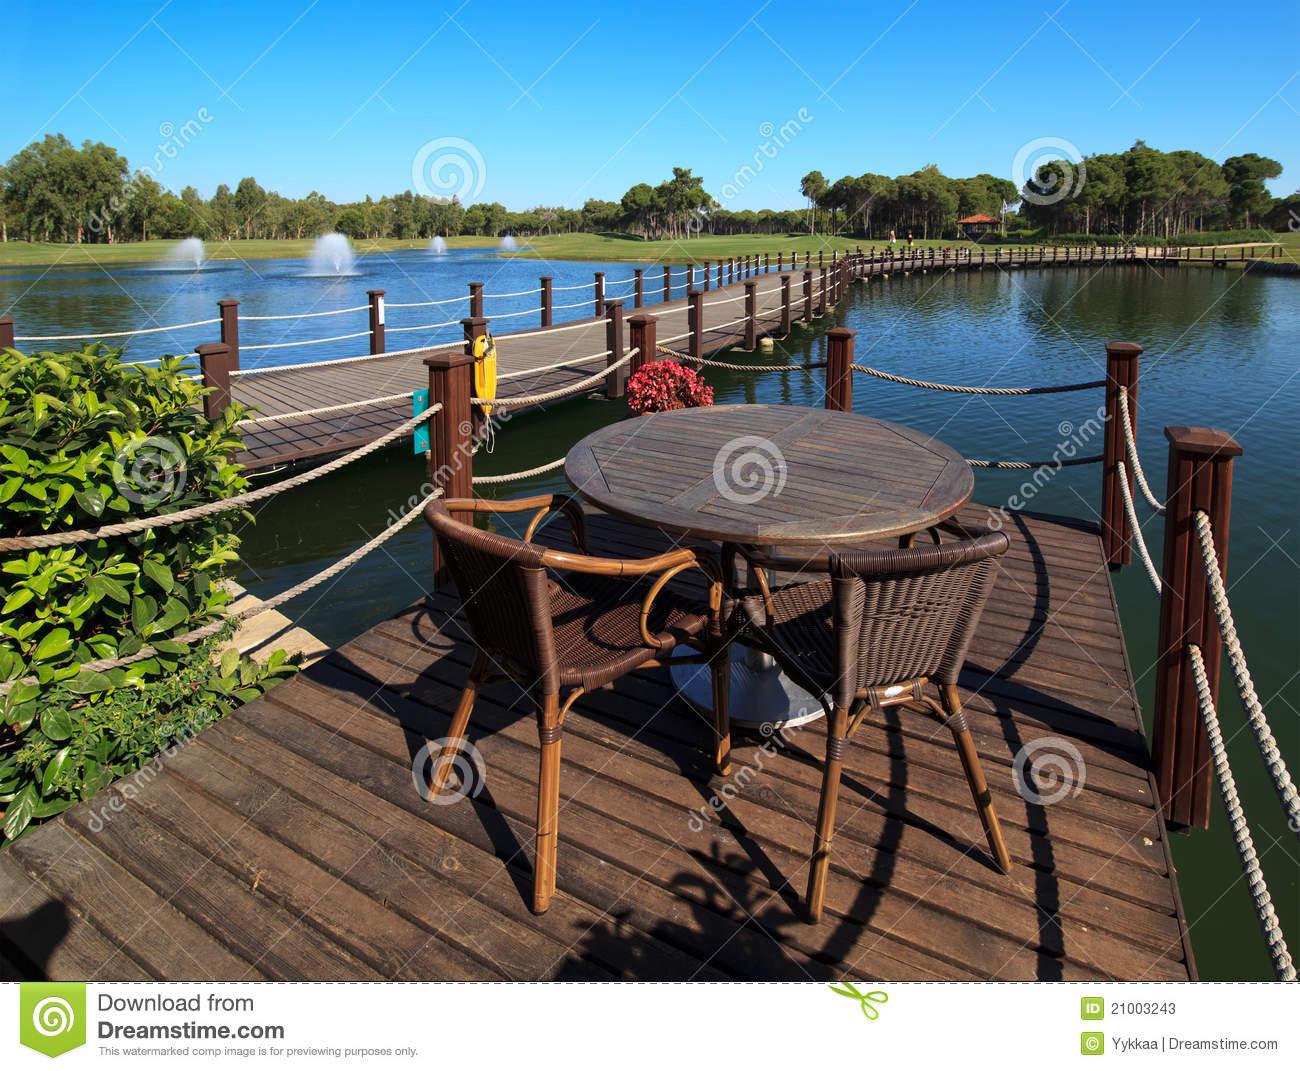 Cafe on the artificial pond stock photos image 21003243 for Artificial pond